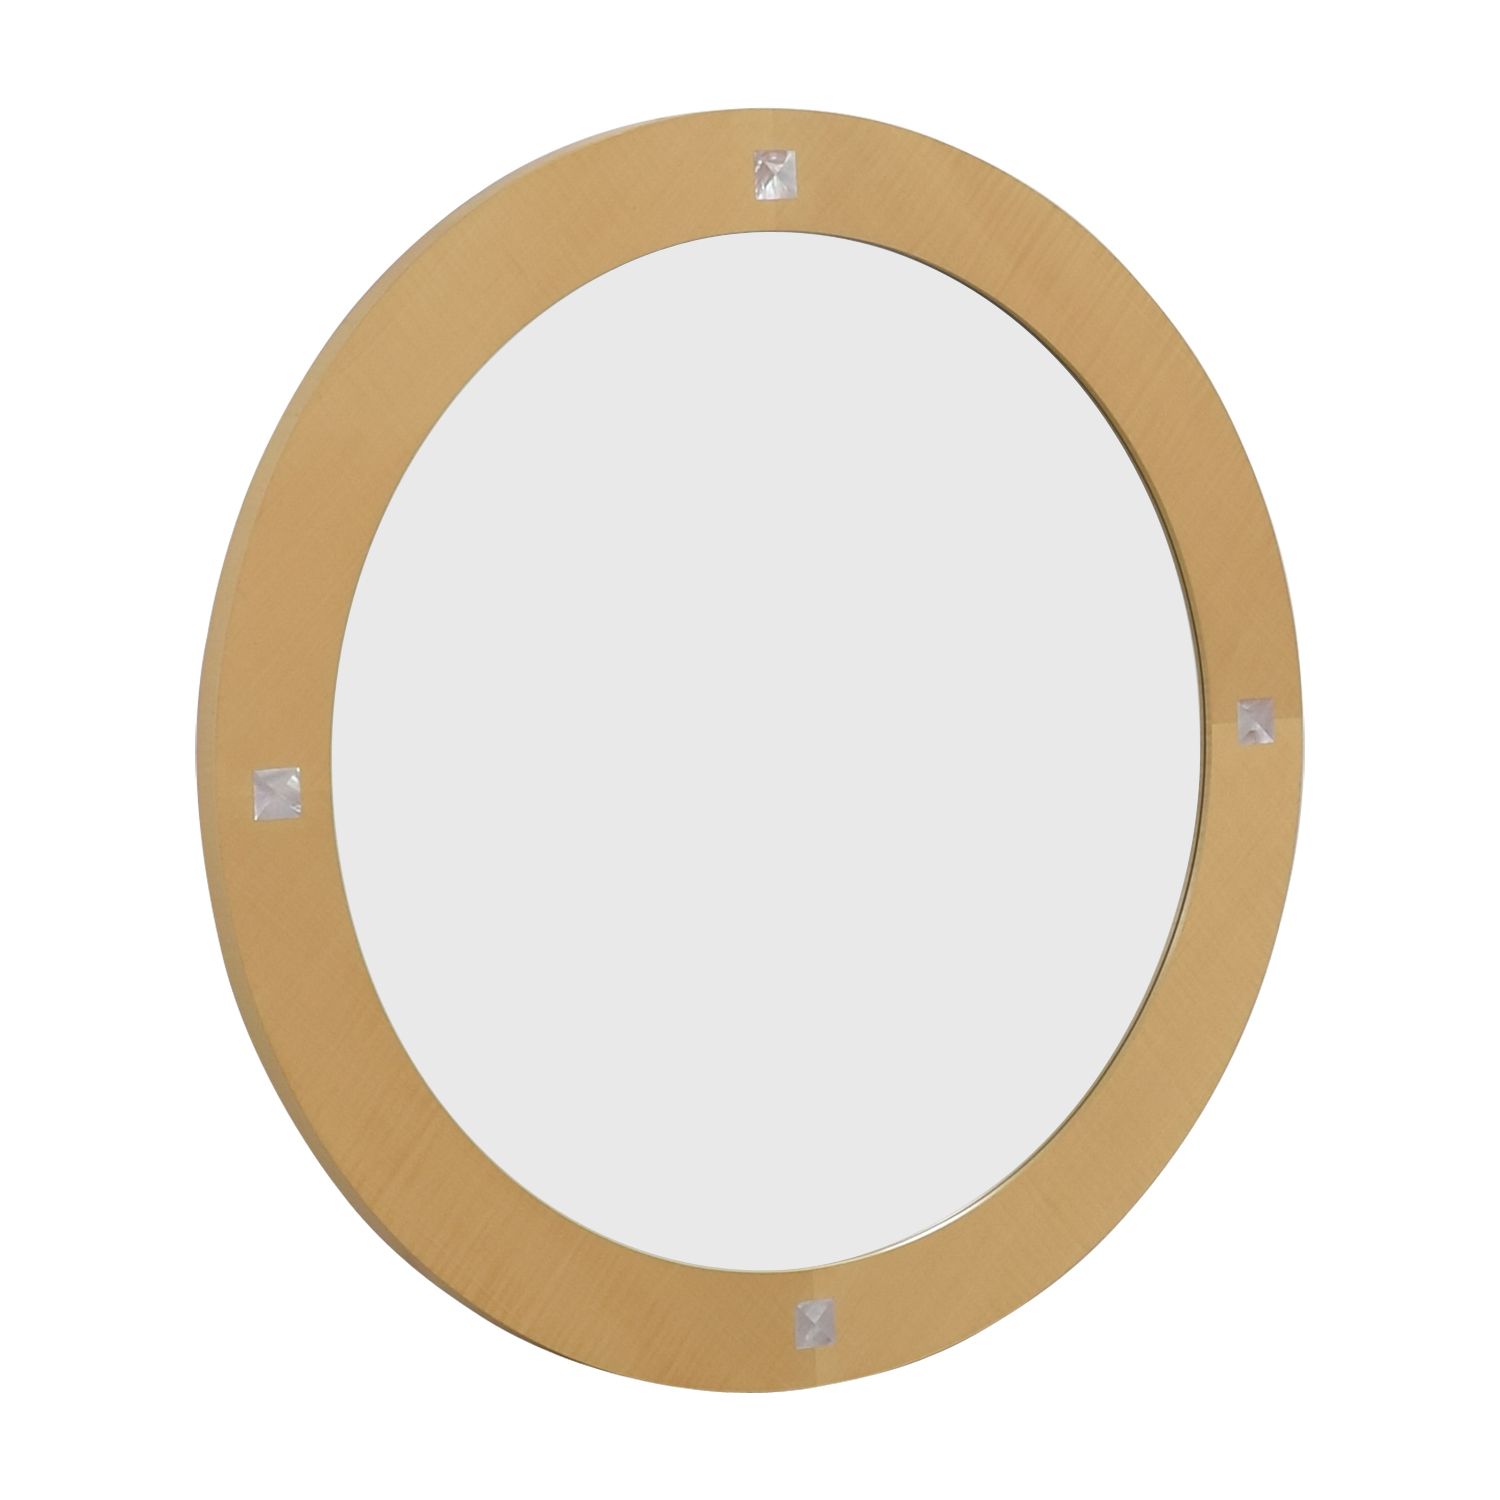 buy Round Natural Wood Wall Mirror Mirrors